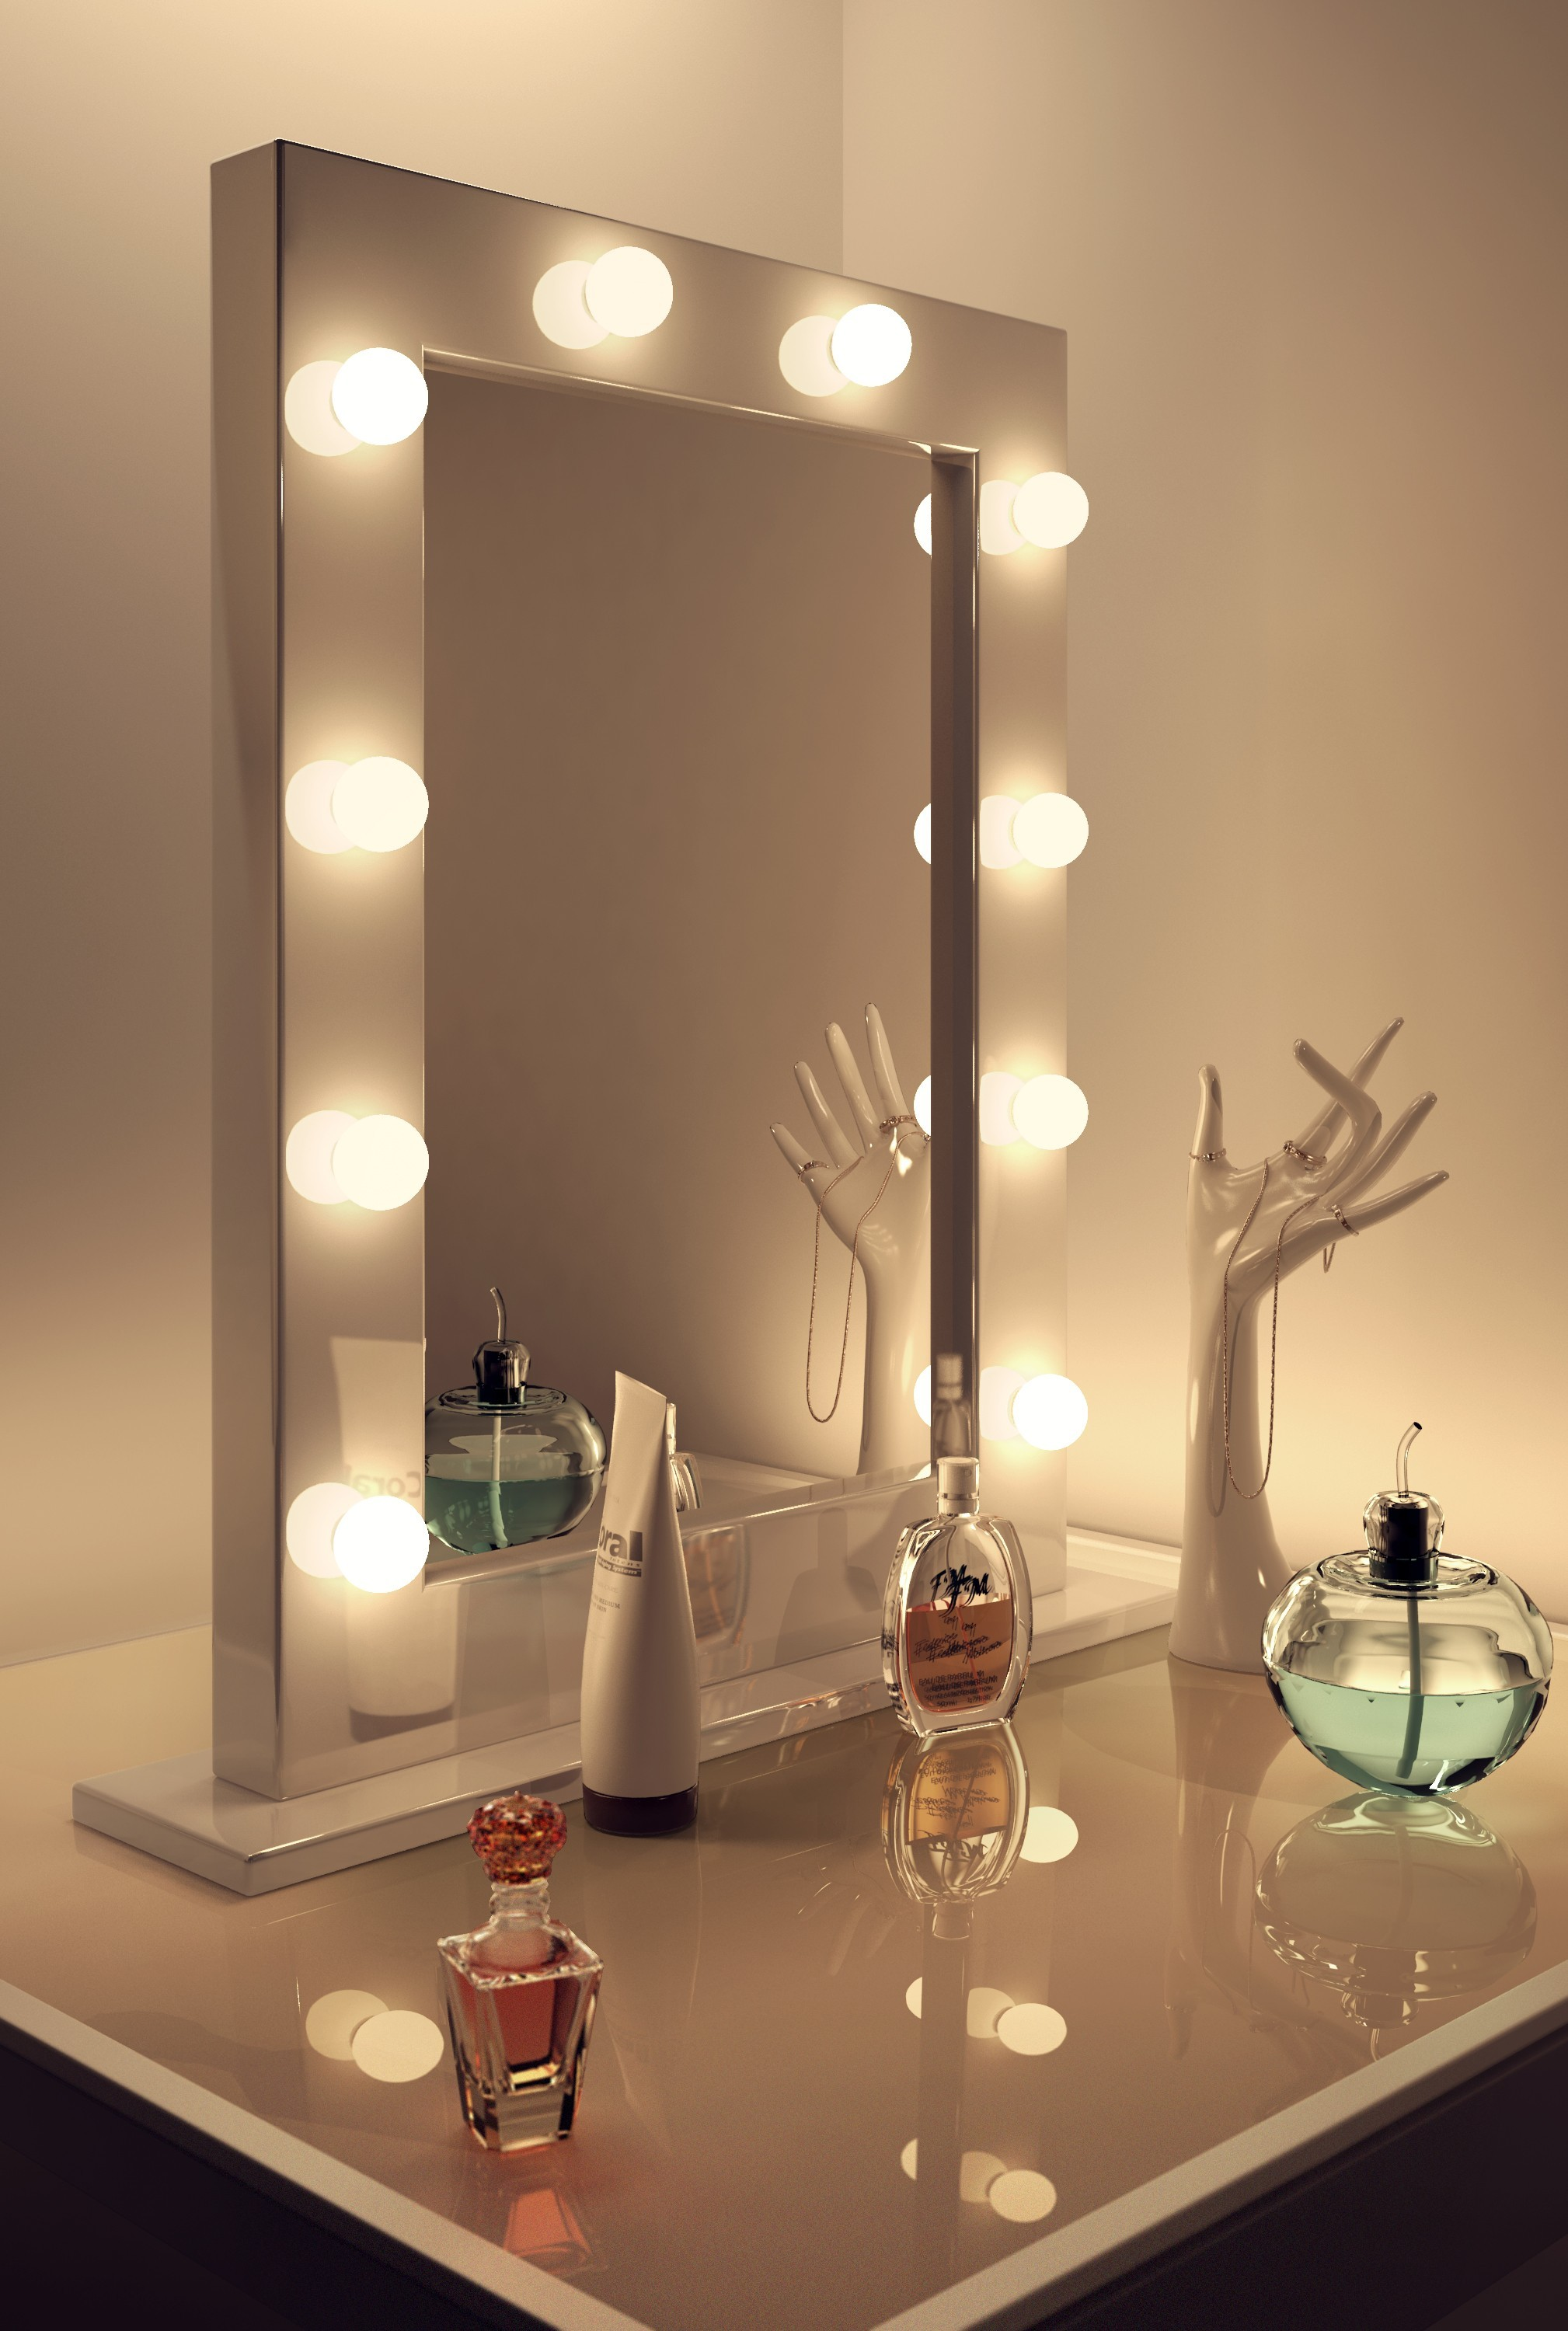 10 facts to consider before installing lighted vanity wall mirrors where to get lighted vanity wall mirrors mozeypictures Gallery